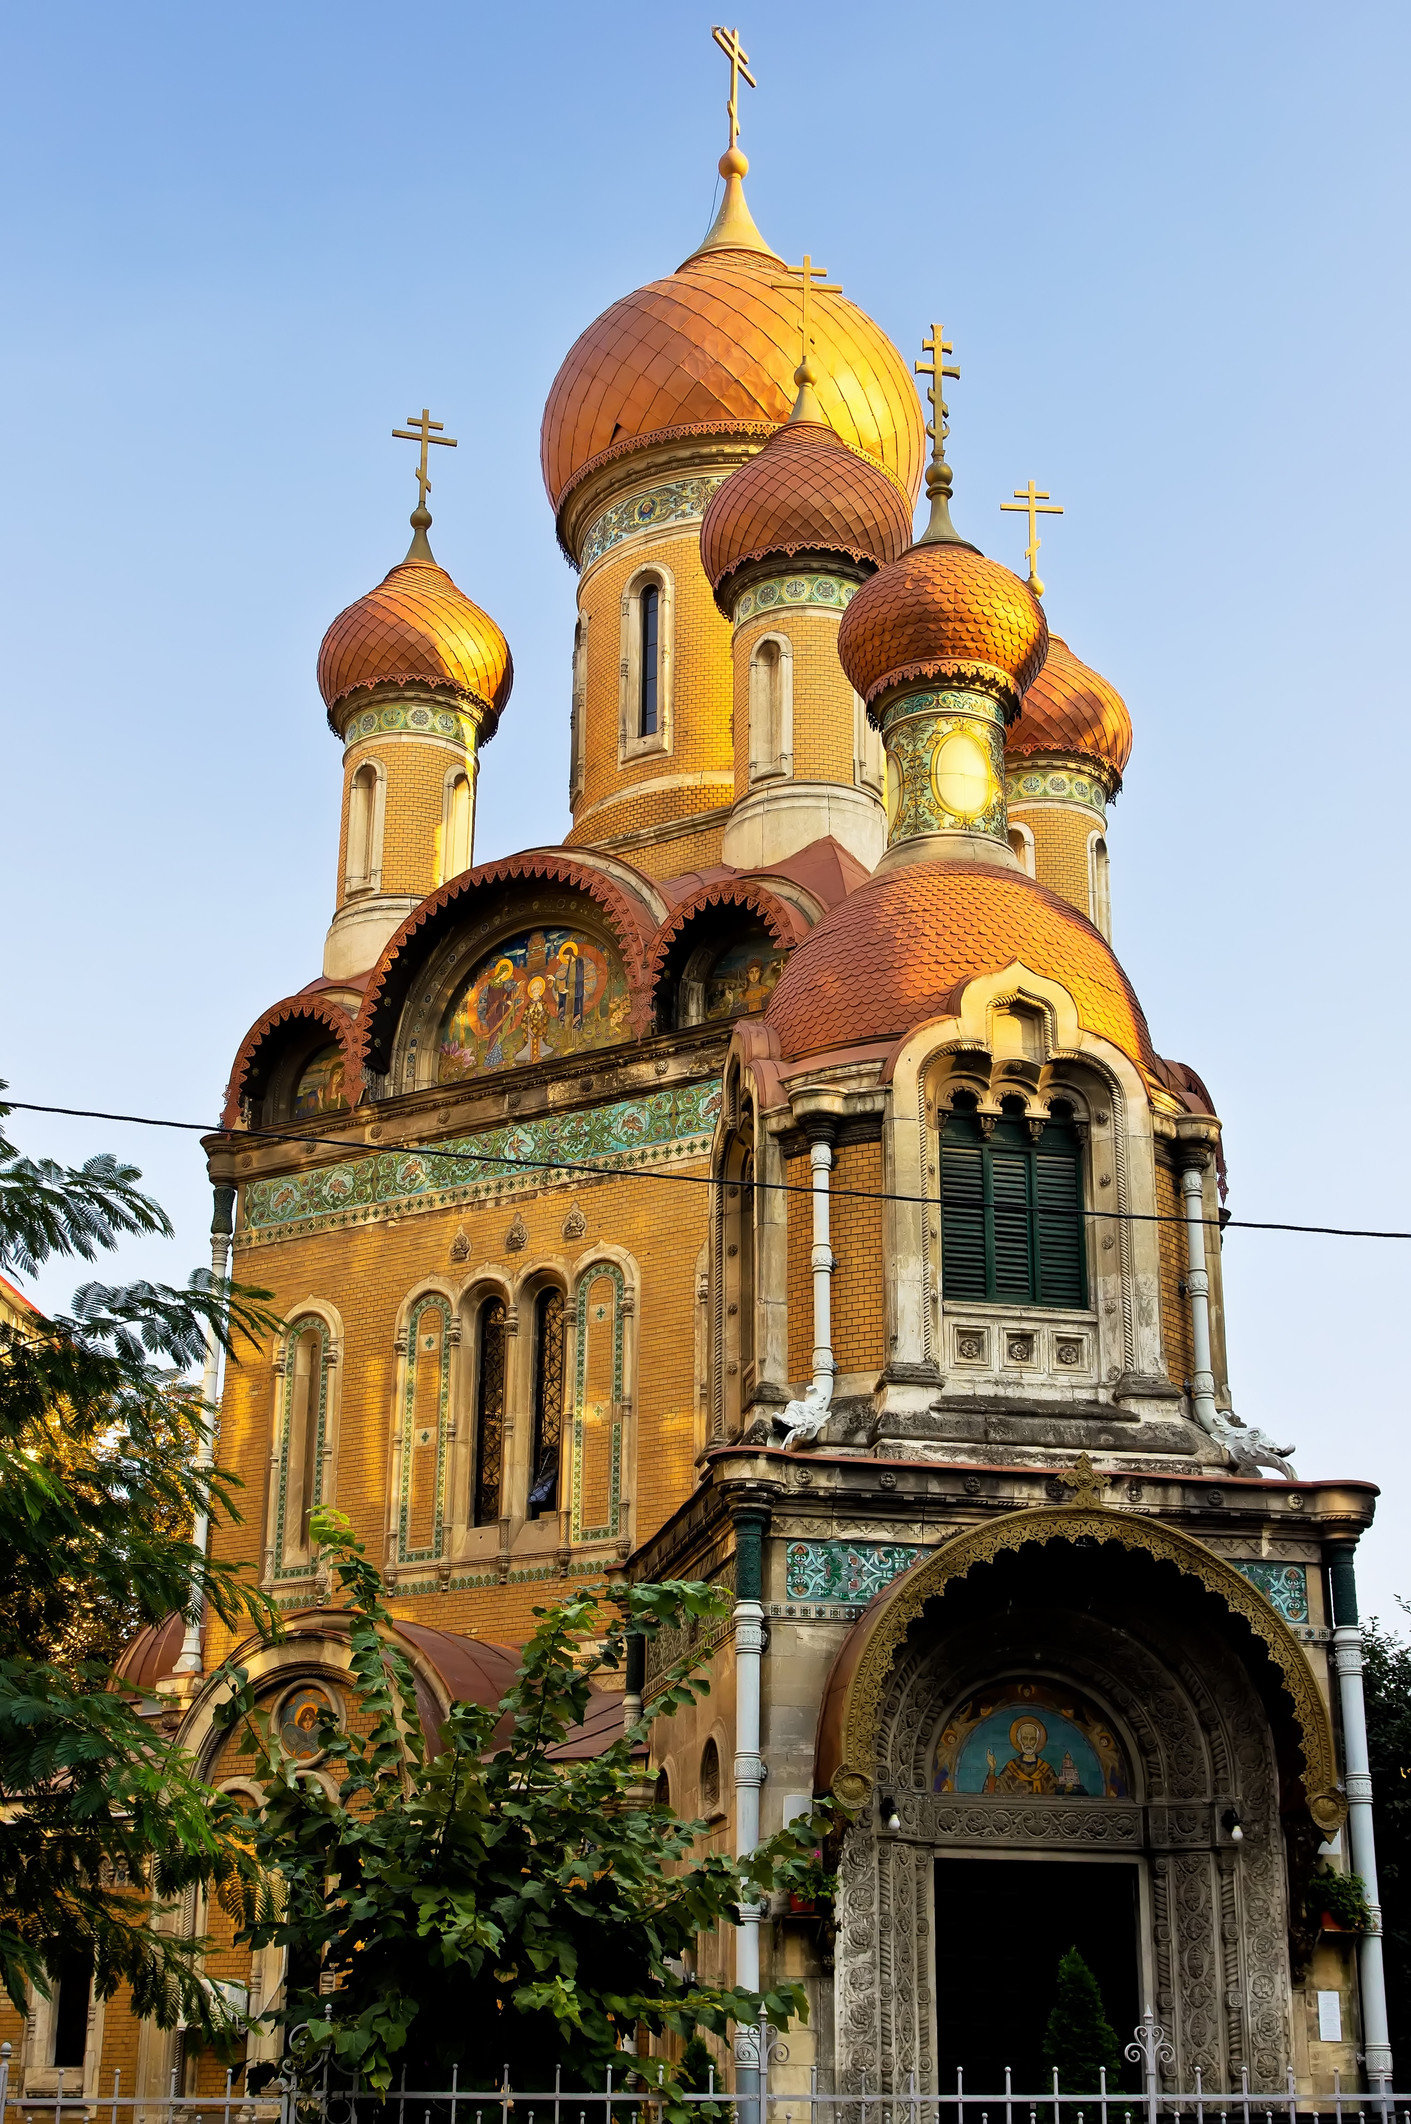 Trip Ideas sky outdoor building landmark place of worship byzantine architecture Church dome bell tower cathedral facade monastery basilica tower spanish missions in california synagogue old stone